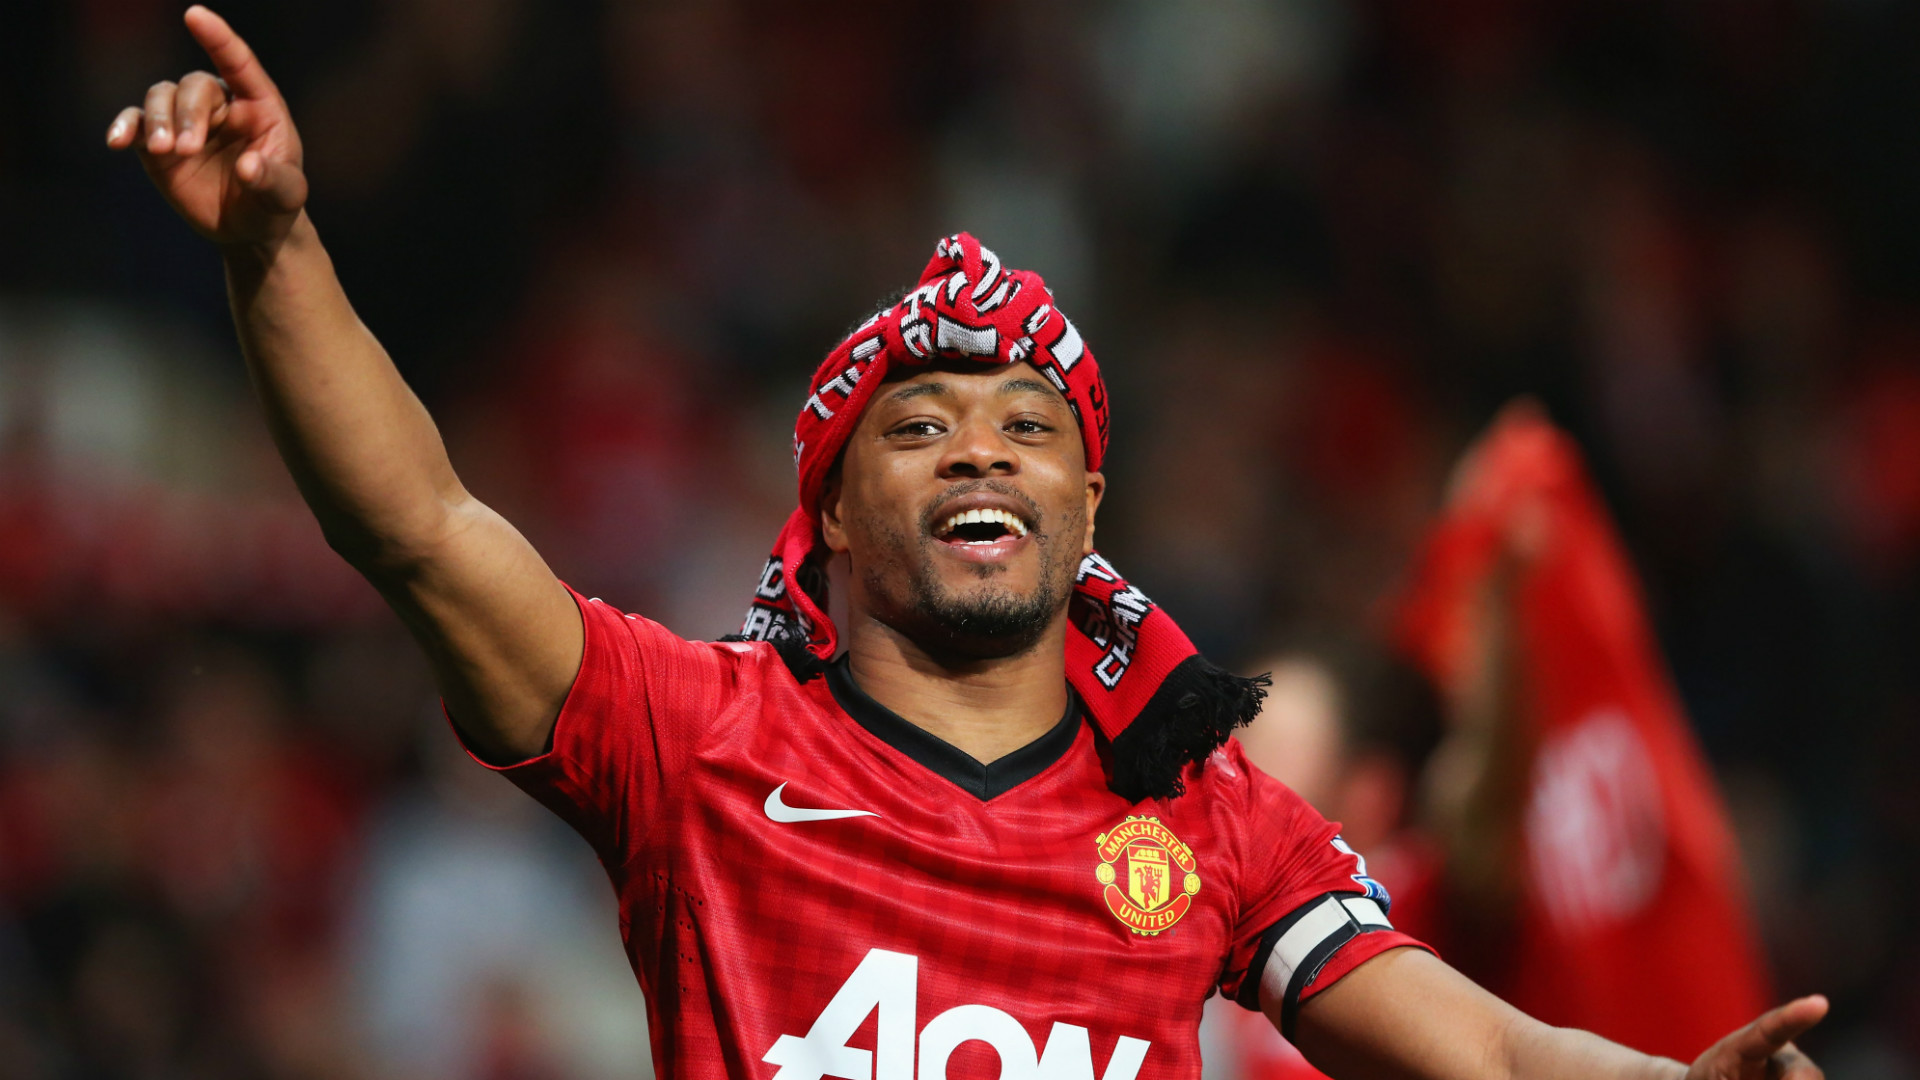 Evra starts working towards coaching badges at Manchester United